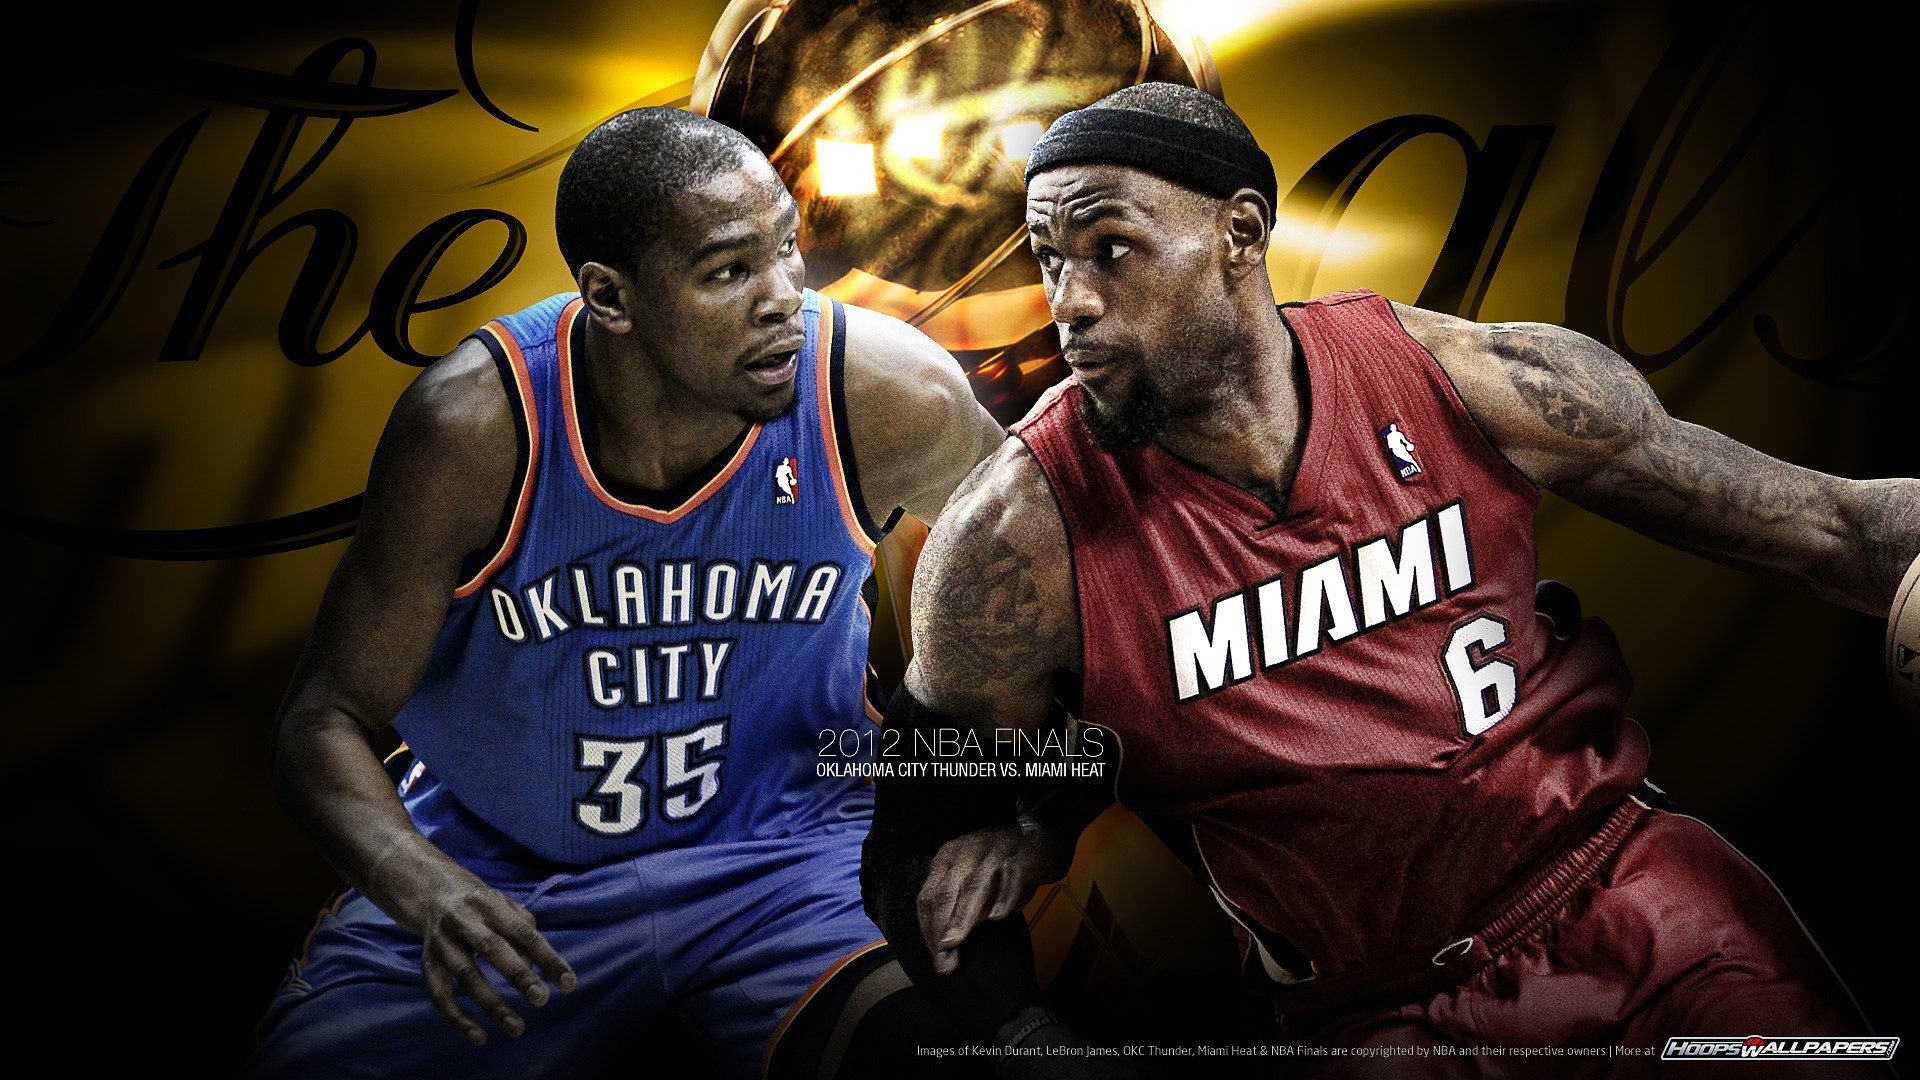 1920x1080 Kevin Durant (Oklahoma City Thunder) vs Lebron James (Miami Heat)